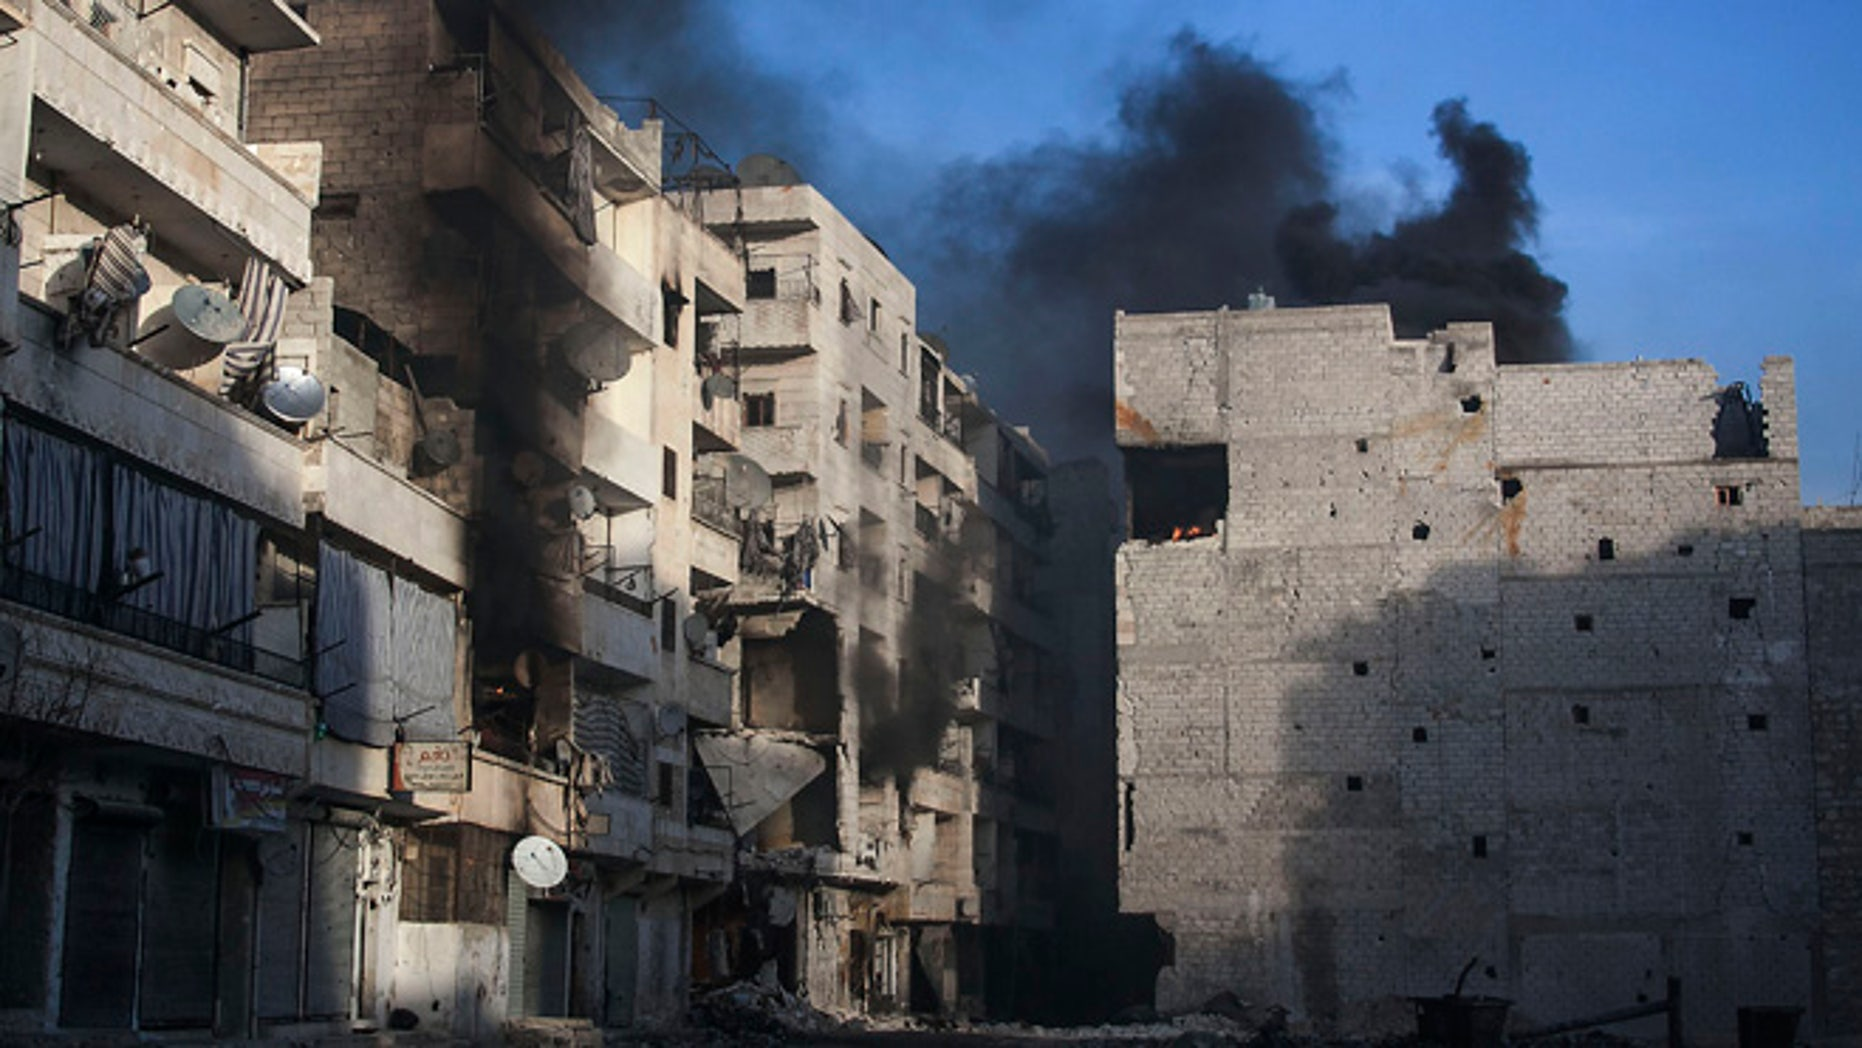 Dec. 5, 2012: Smoke rises from residential buildings due heavy fighting between Free Syrian Army fighters and government forces in Aleppo, Syria.